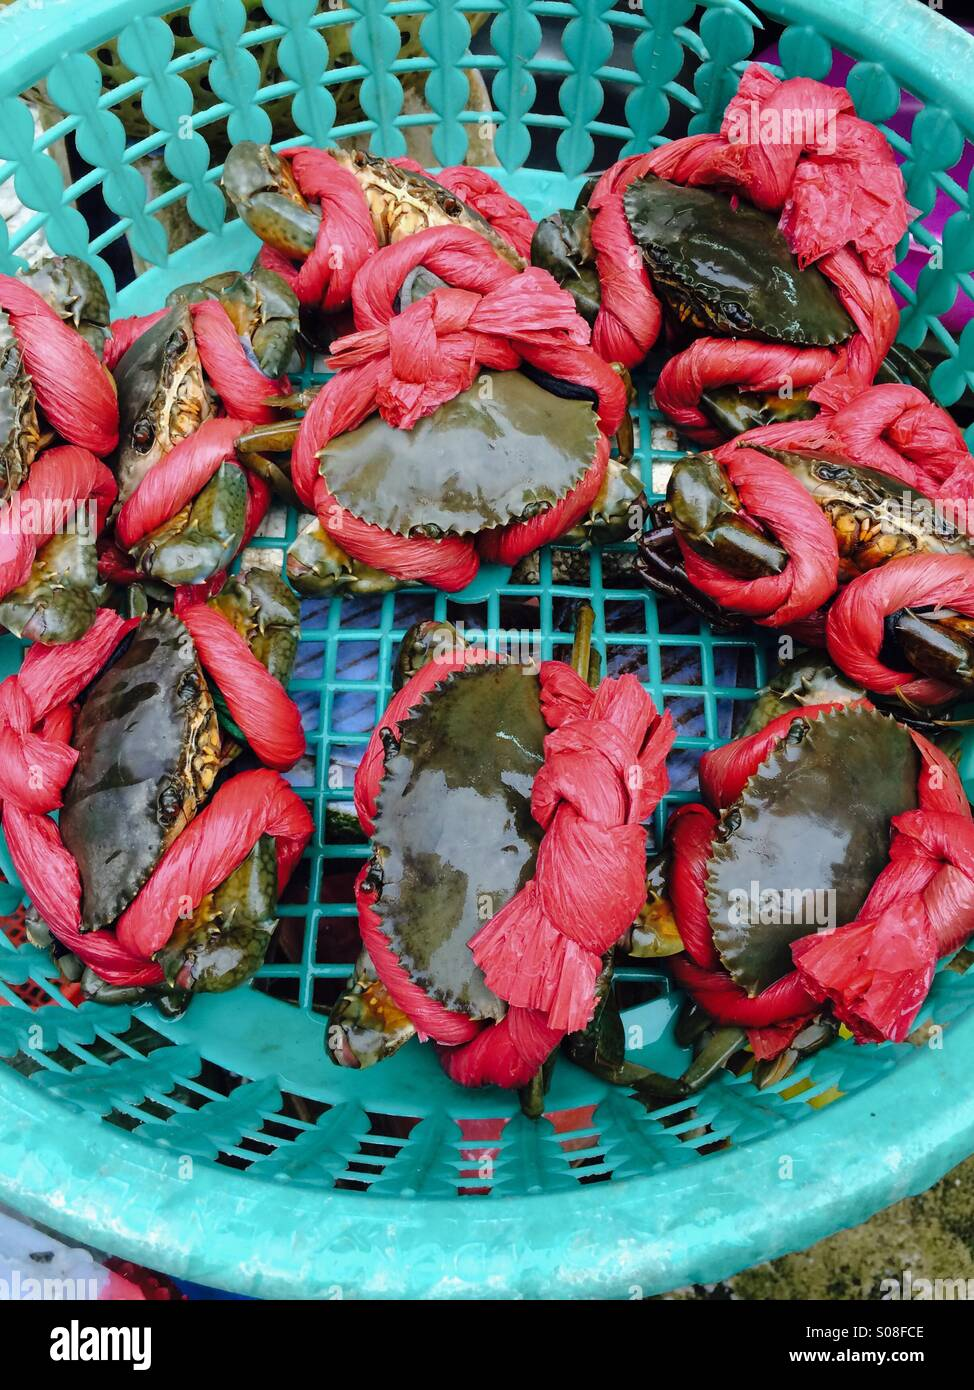 Fresh Crabs on sale at Ben Thanh Market in Ho Chi Minh City - Stock Image